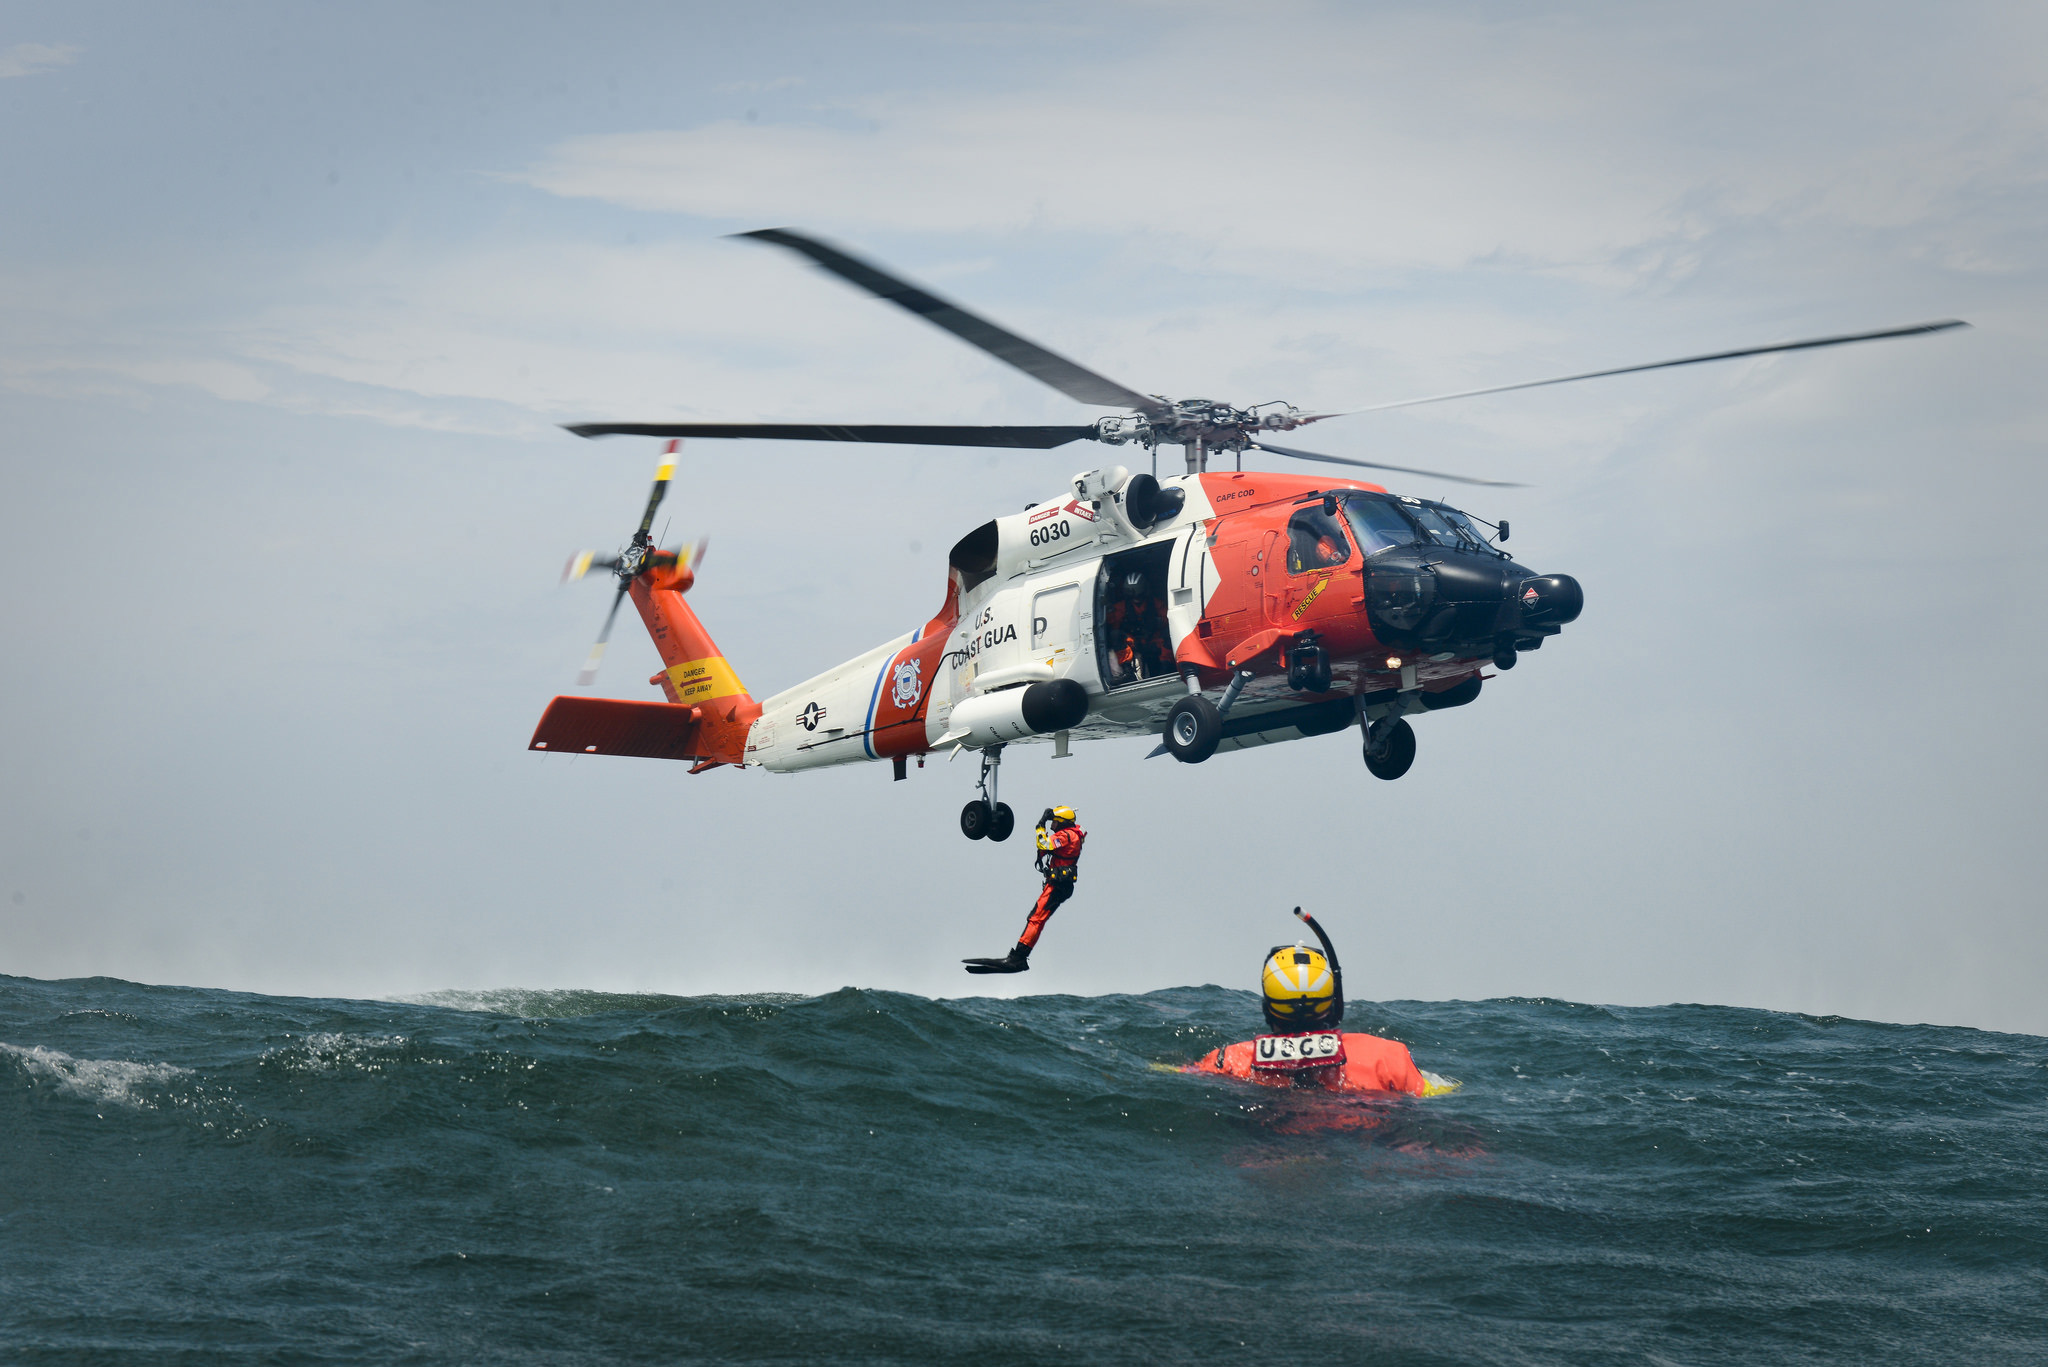 Coast guard helicopter photo